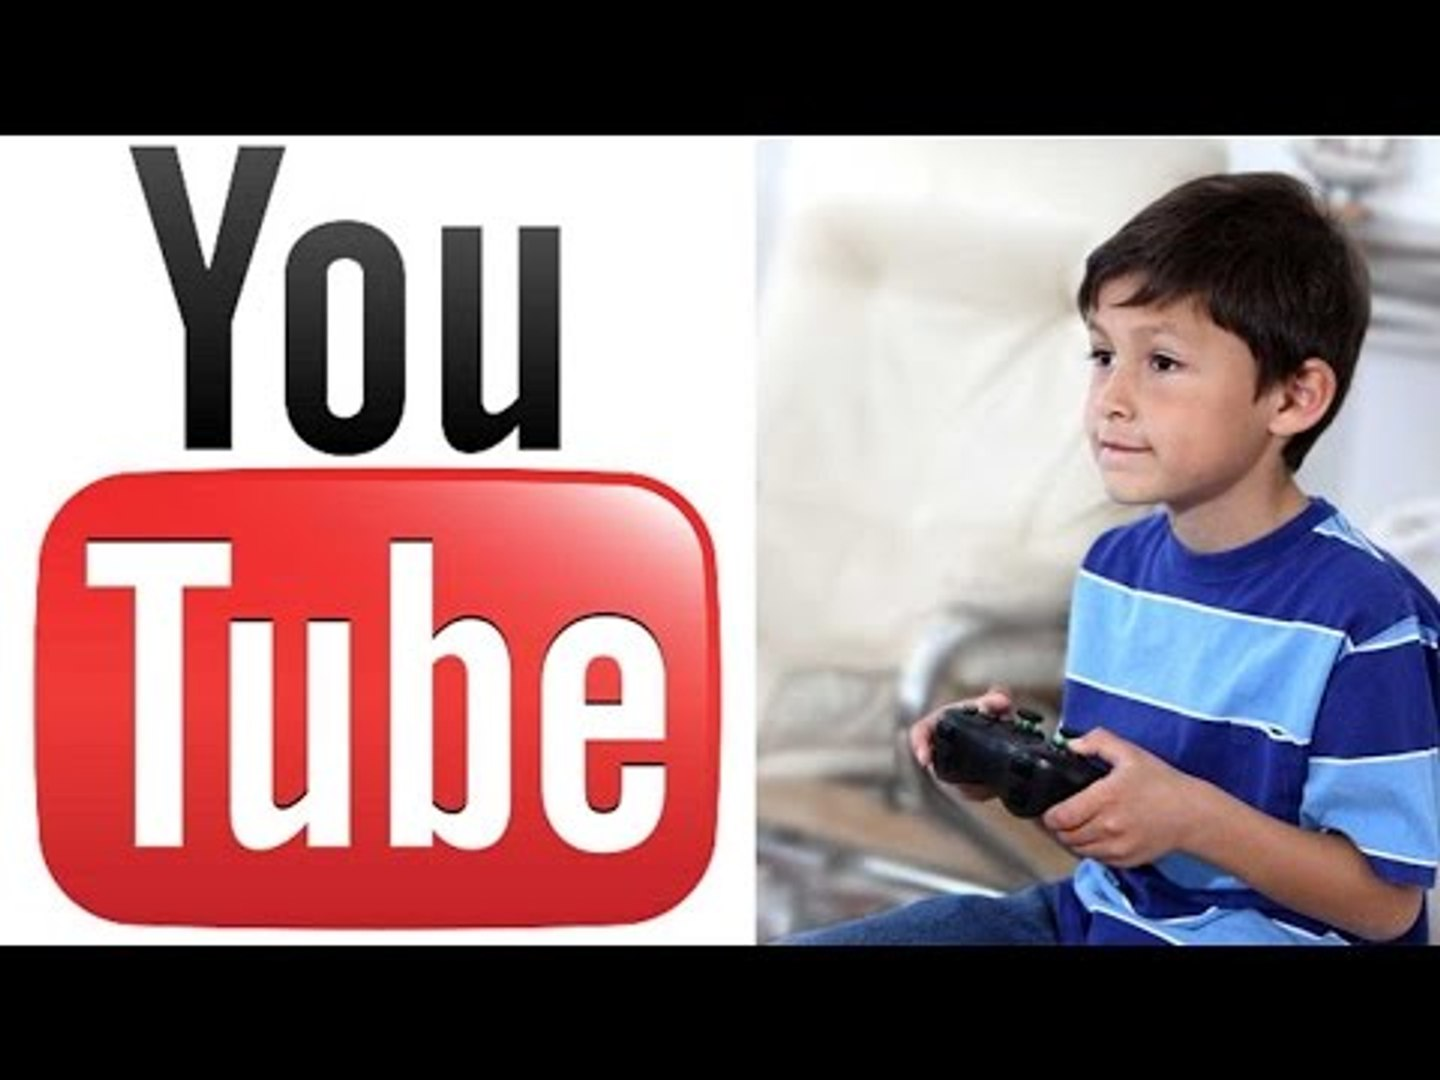 Youtube Gaming launched by Google to attract gaming related users